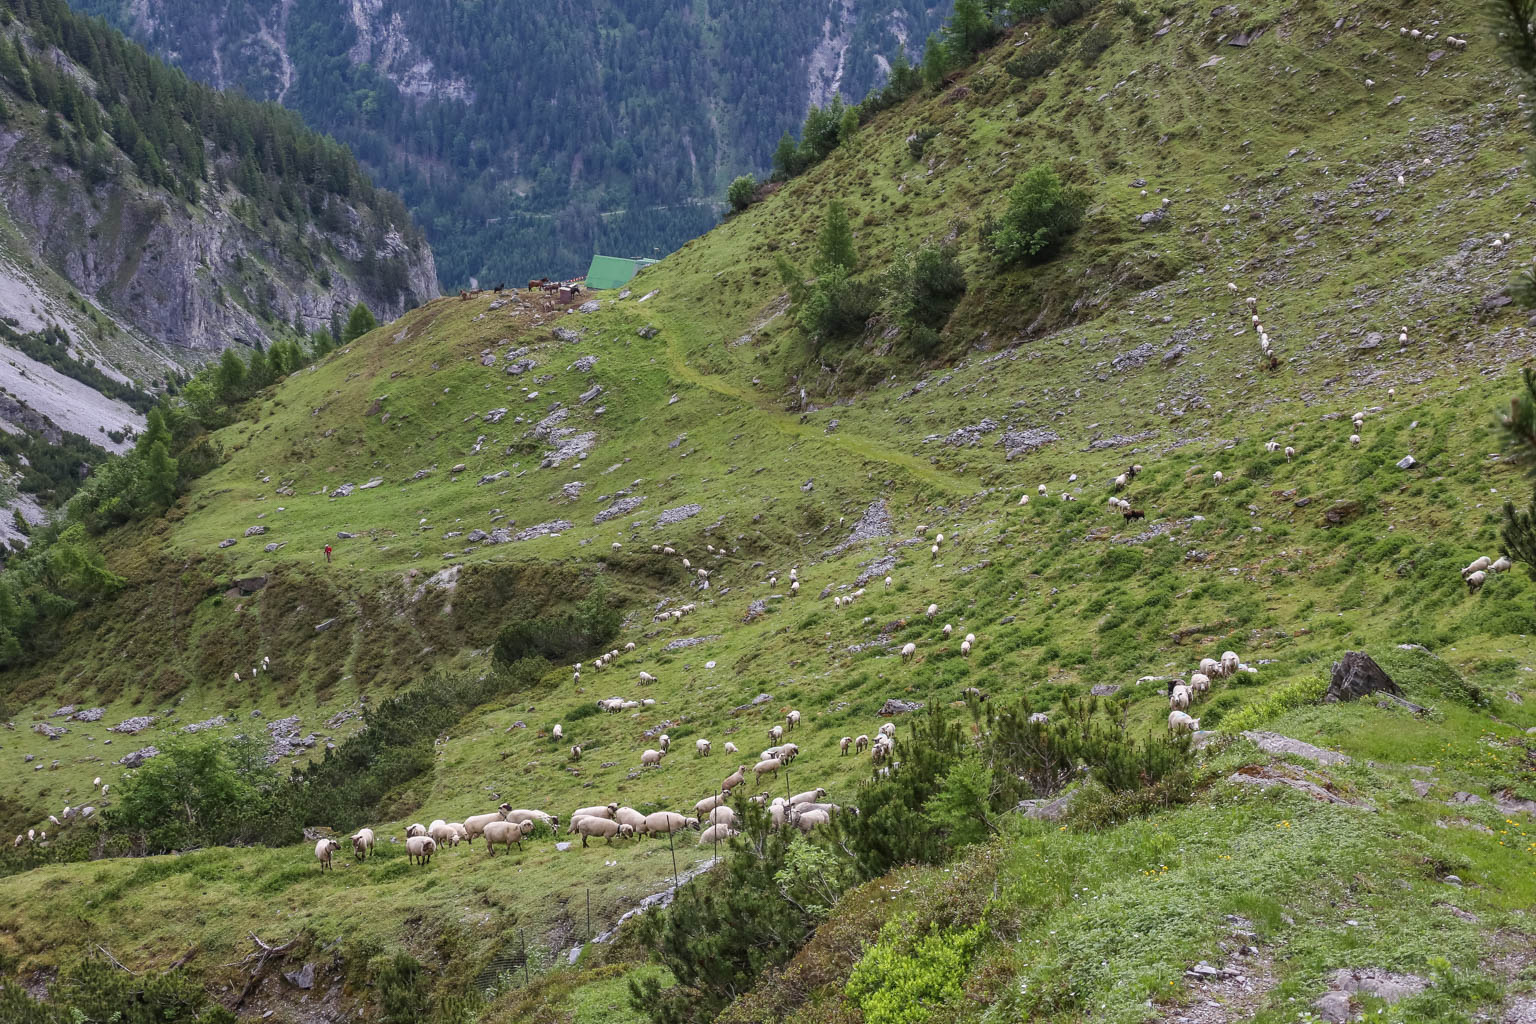 Sheepherding Switzerland © Ch-Wolf - © All rights reserved